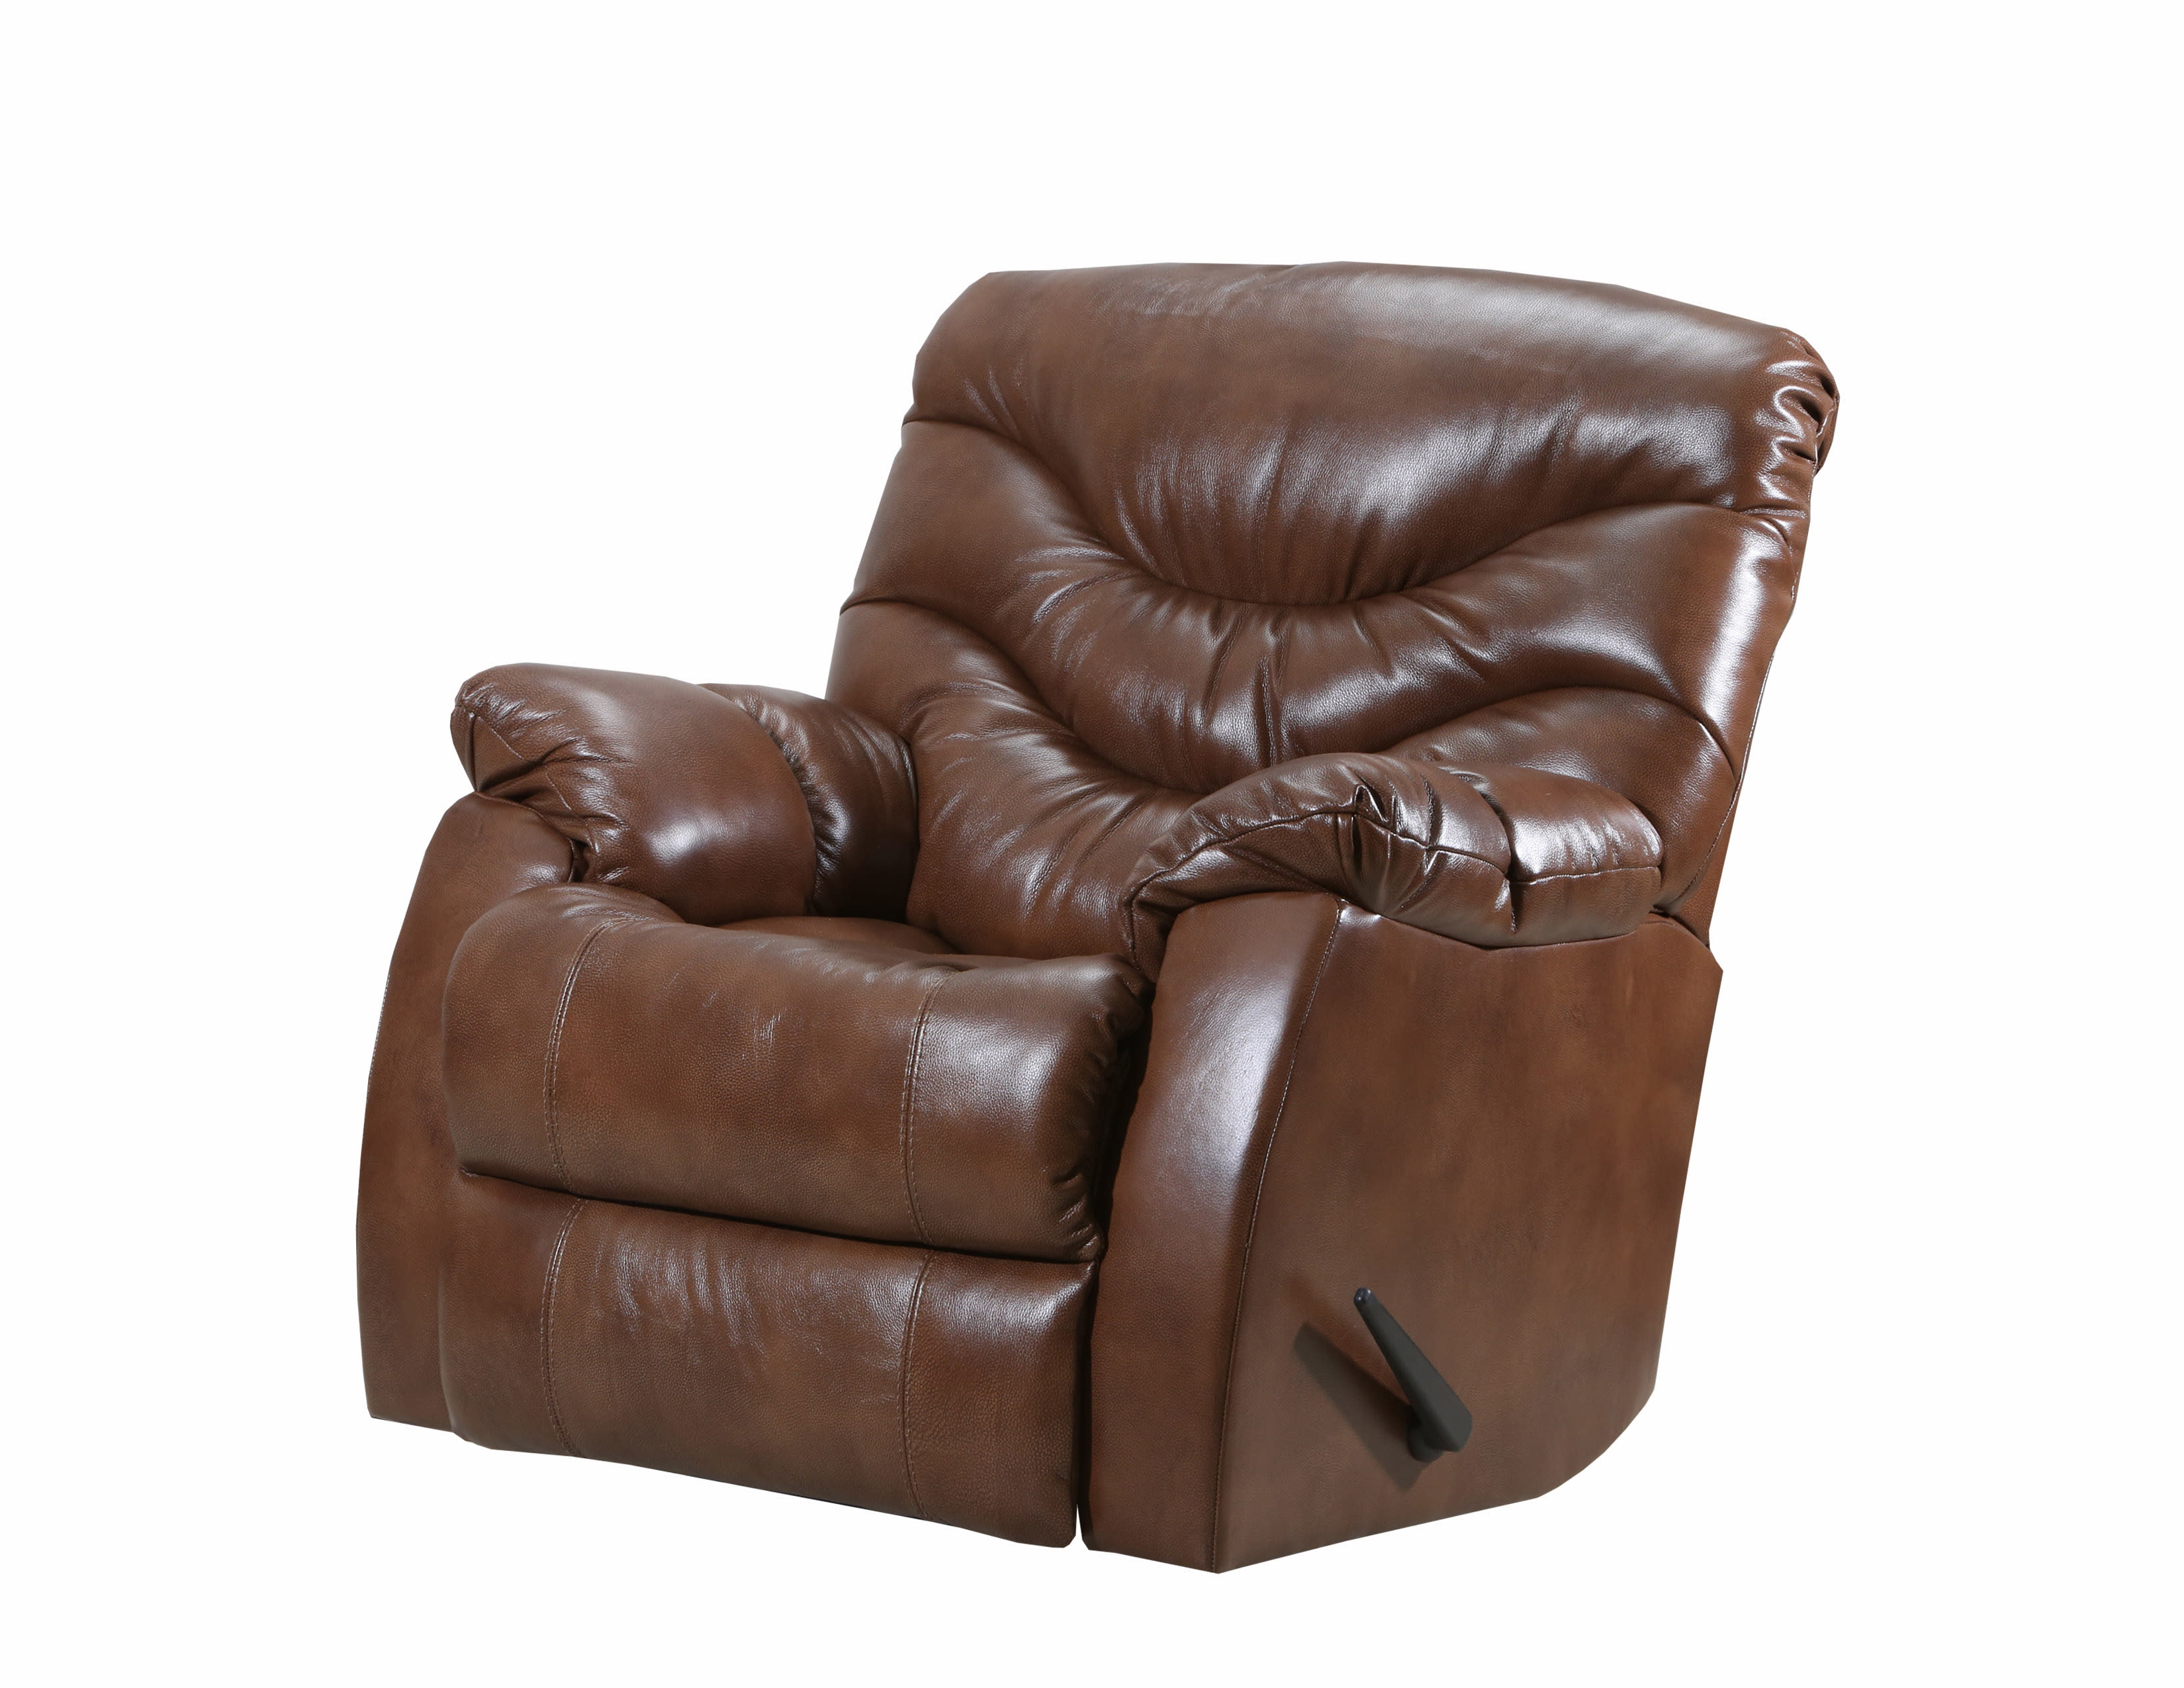 Lane Furniture Yellowstone Tobacco Swivel Rocker Recliner & Reviews For Widely Used Swivel Tobacco Leather Chairs (Gallery 11 of 20)